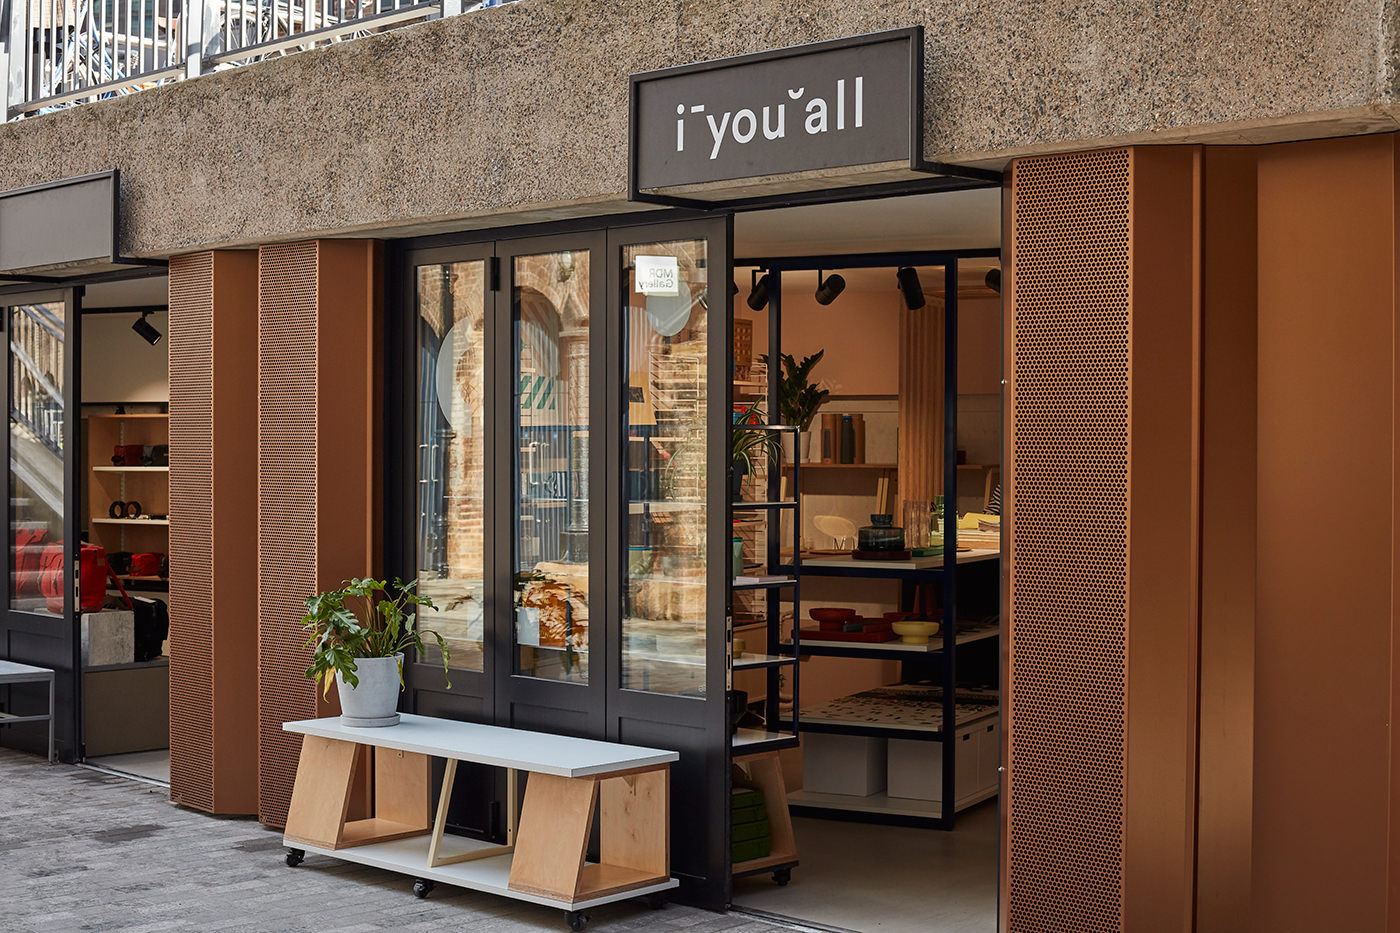 iyouall stores